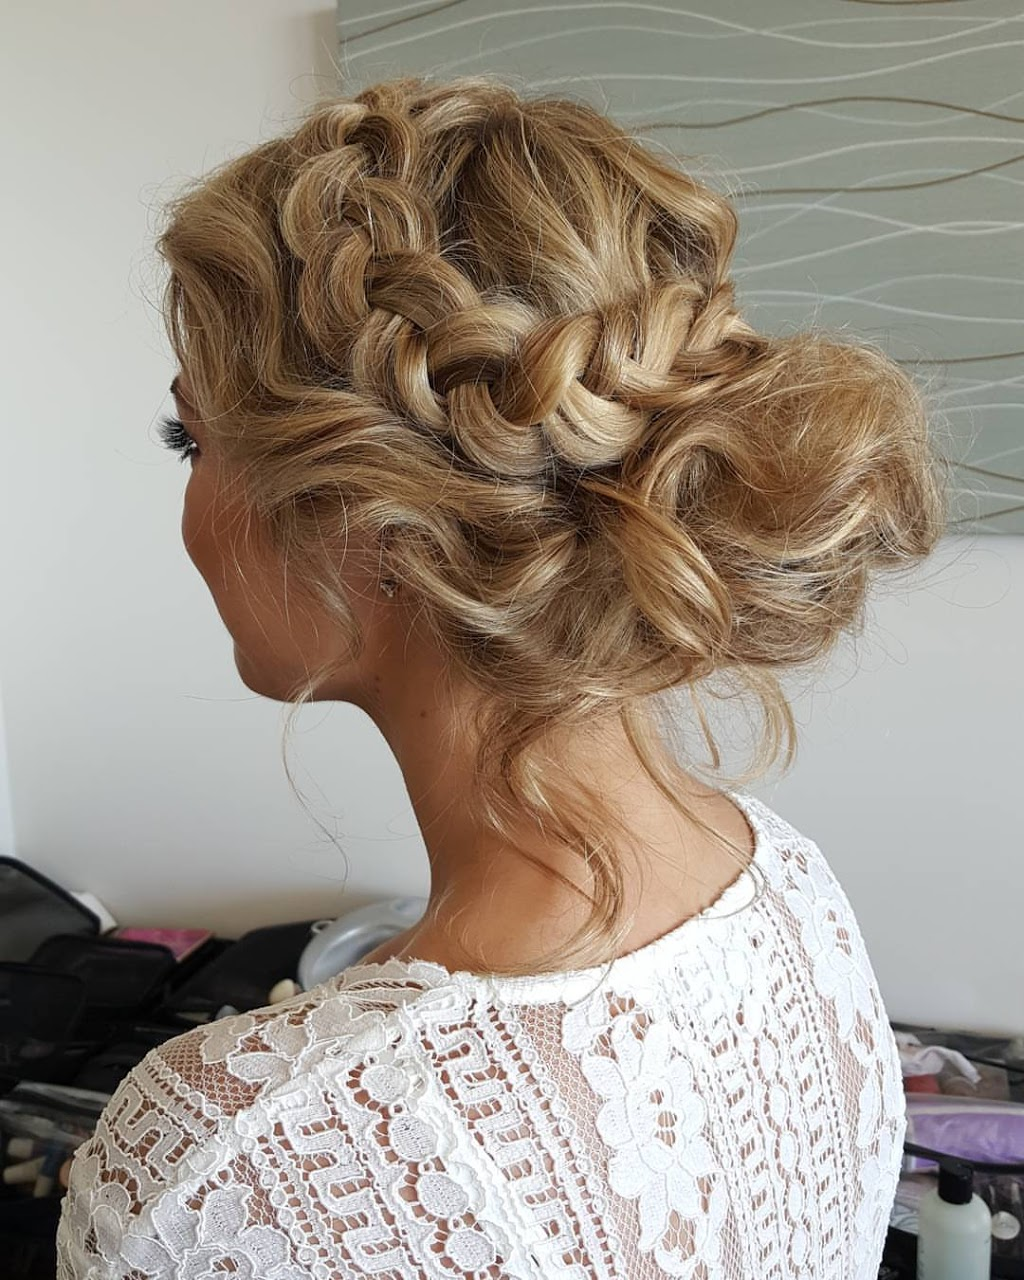 CHIC ARTISTRY   hair care   40 Queen St, Lorn NSW 2320, Australia   0422327885 OR +61 422 327 885